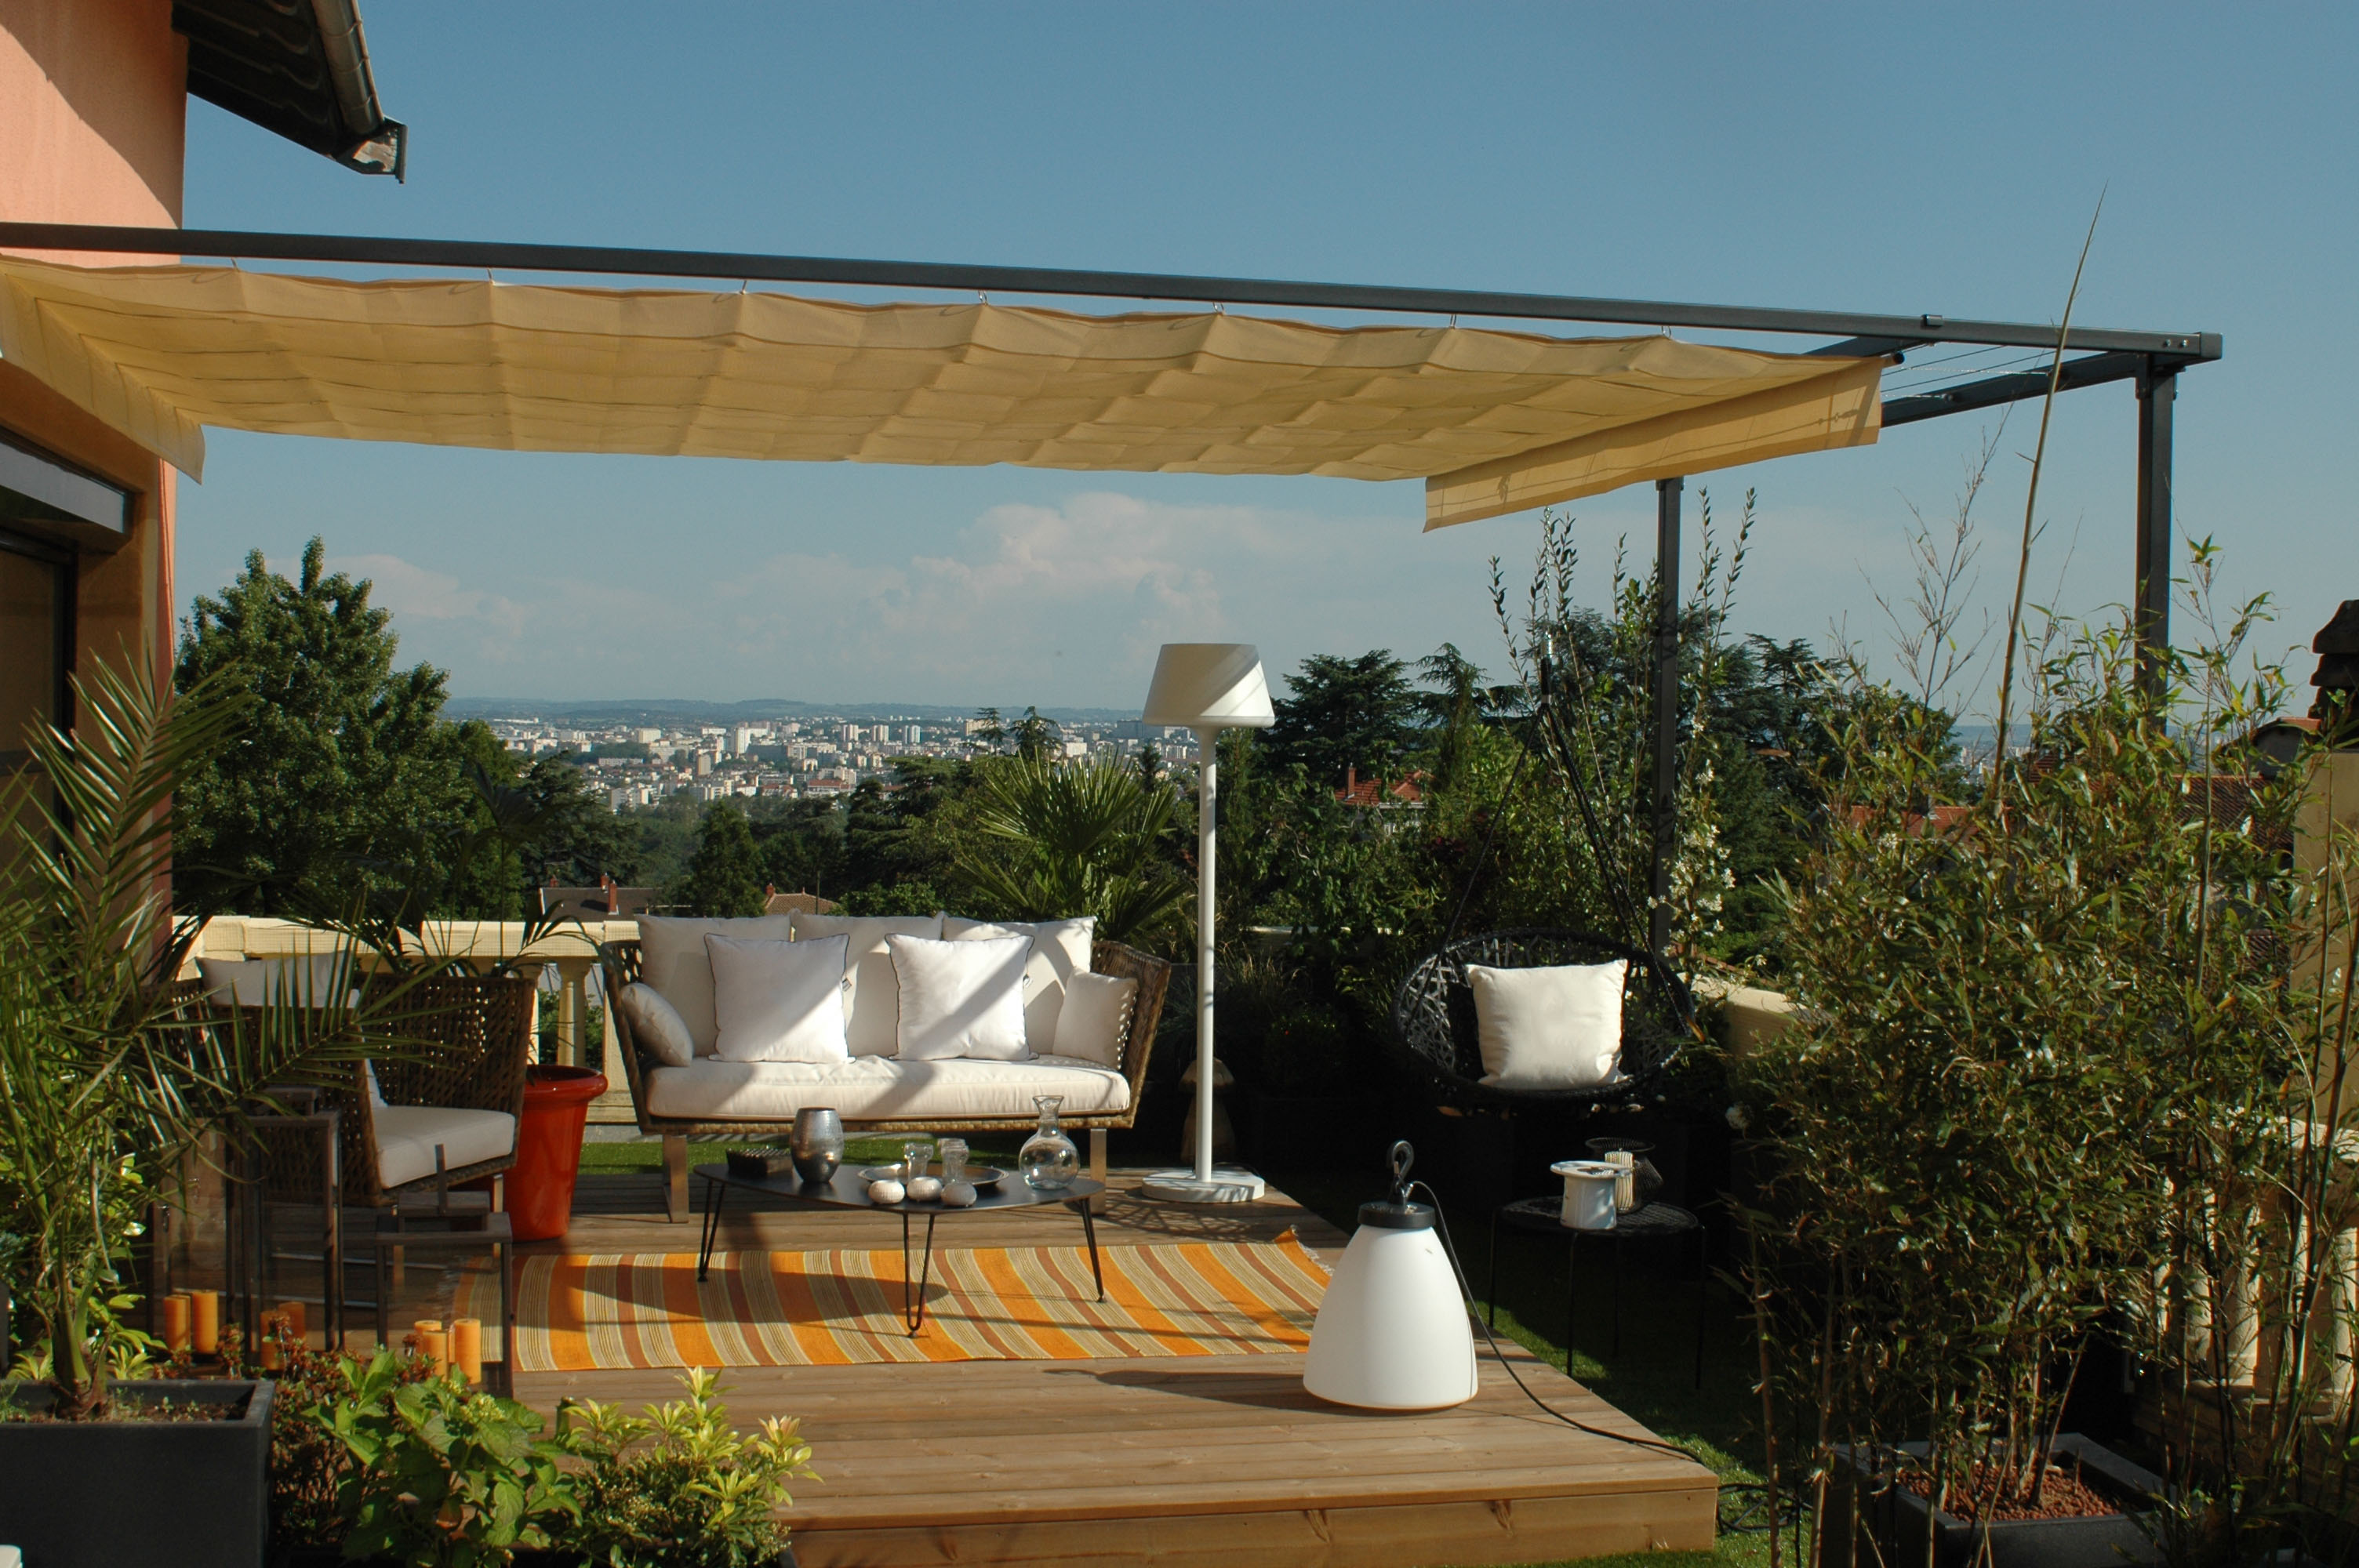 Best Canisse Sur Pergola Contemporary - lalawgroup.us - lalawgroup.us